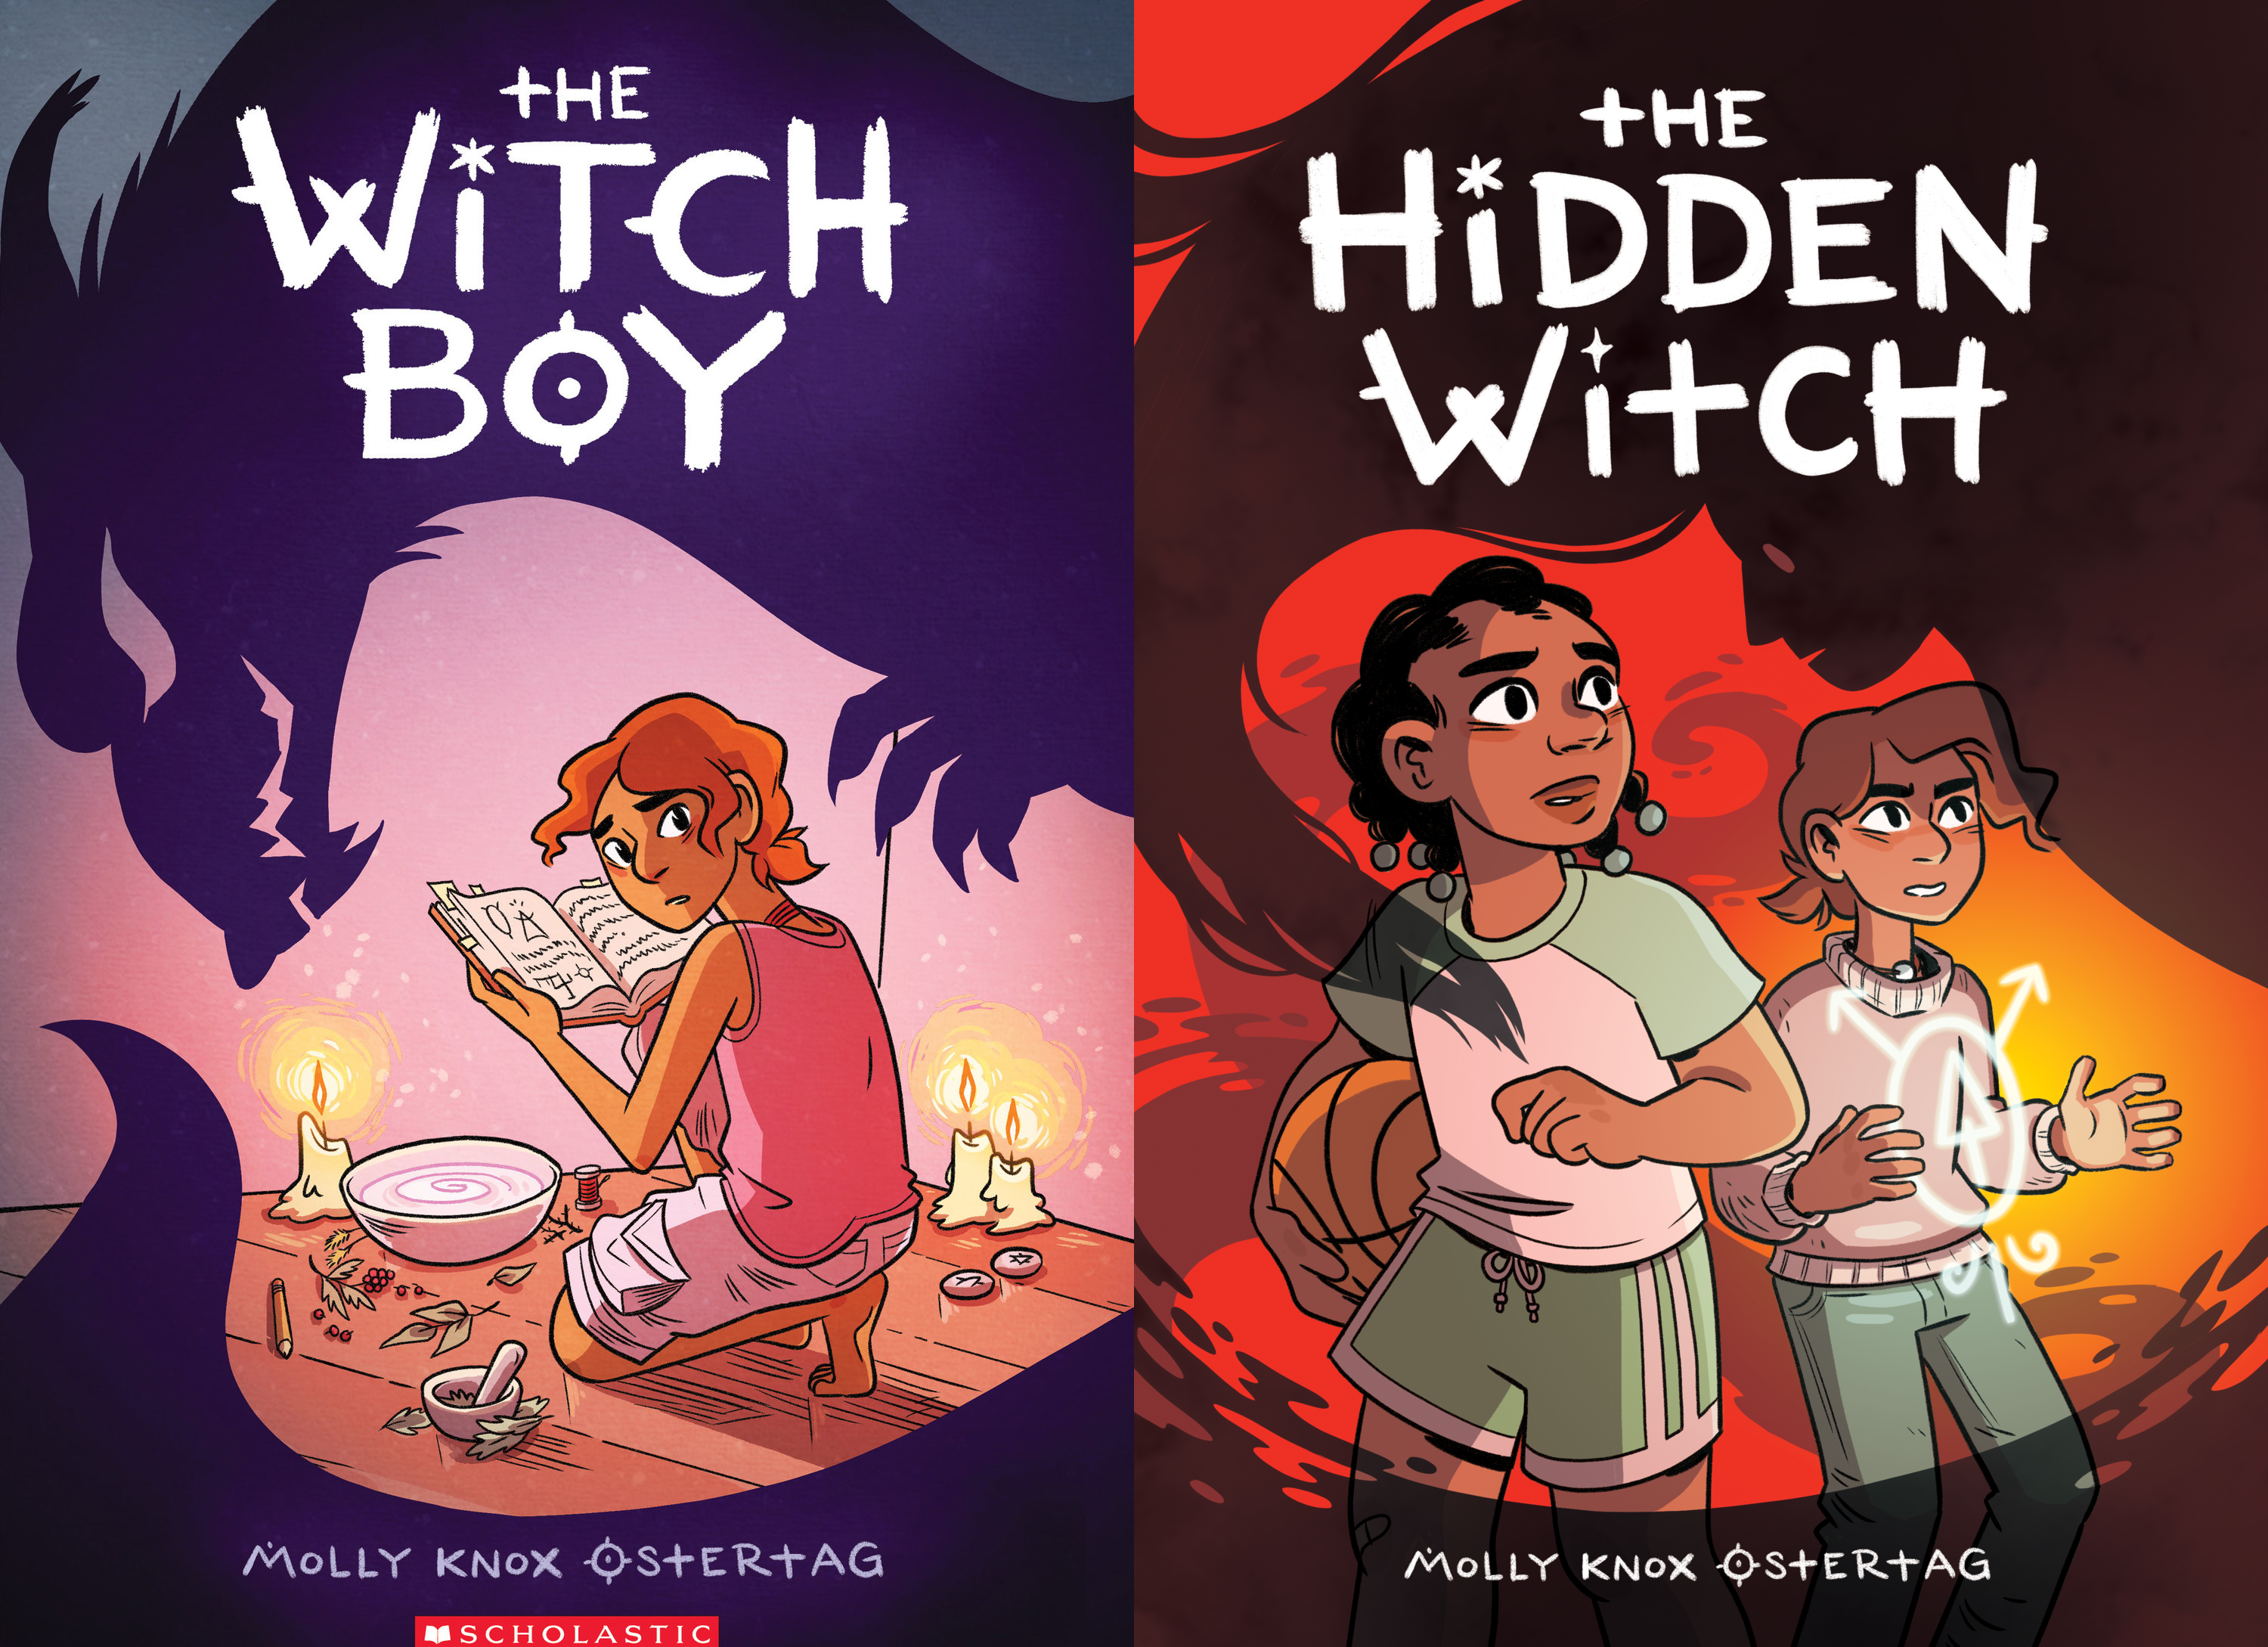 """Image stills of the first and second book in Molly Ostertag's series, <em>The Witch Boy</em> (left) and <em>The Hidden Witch</em> (right), courtesy of Scholastic.<span class=""""redactor-invisible-space""""></span>"""